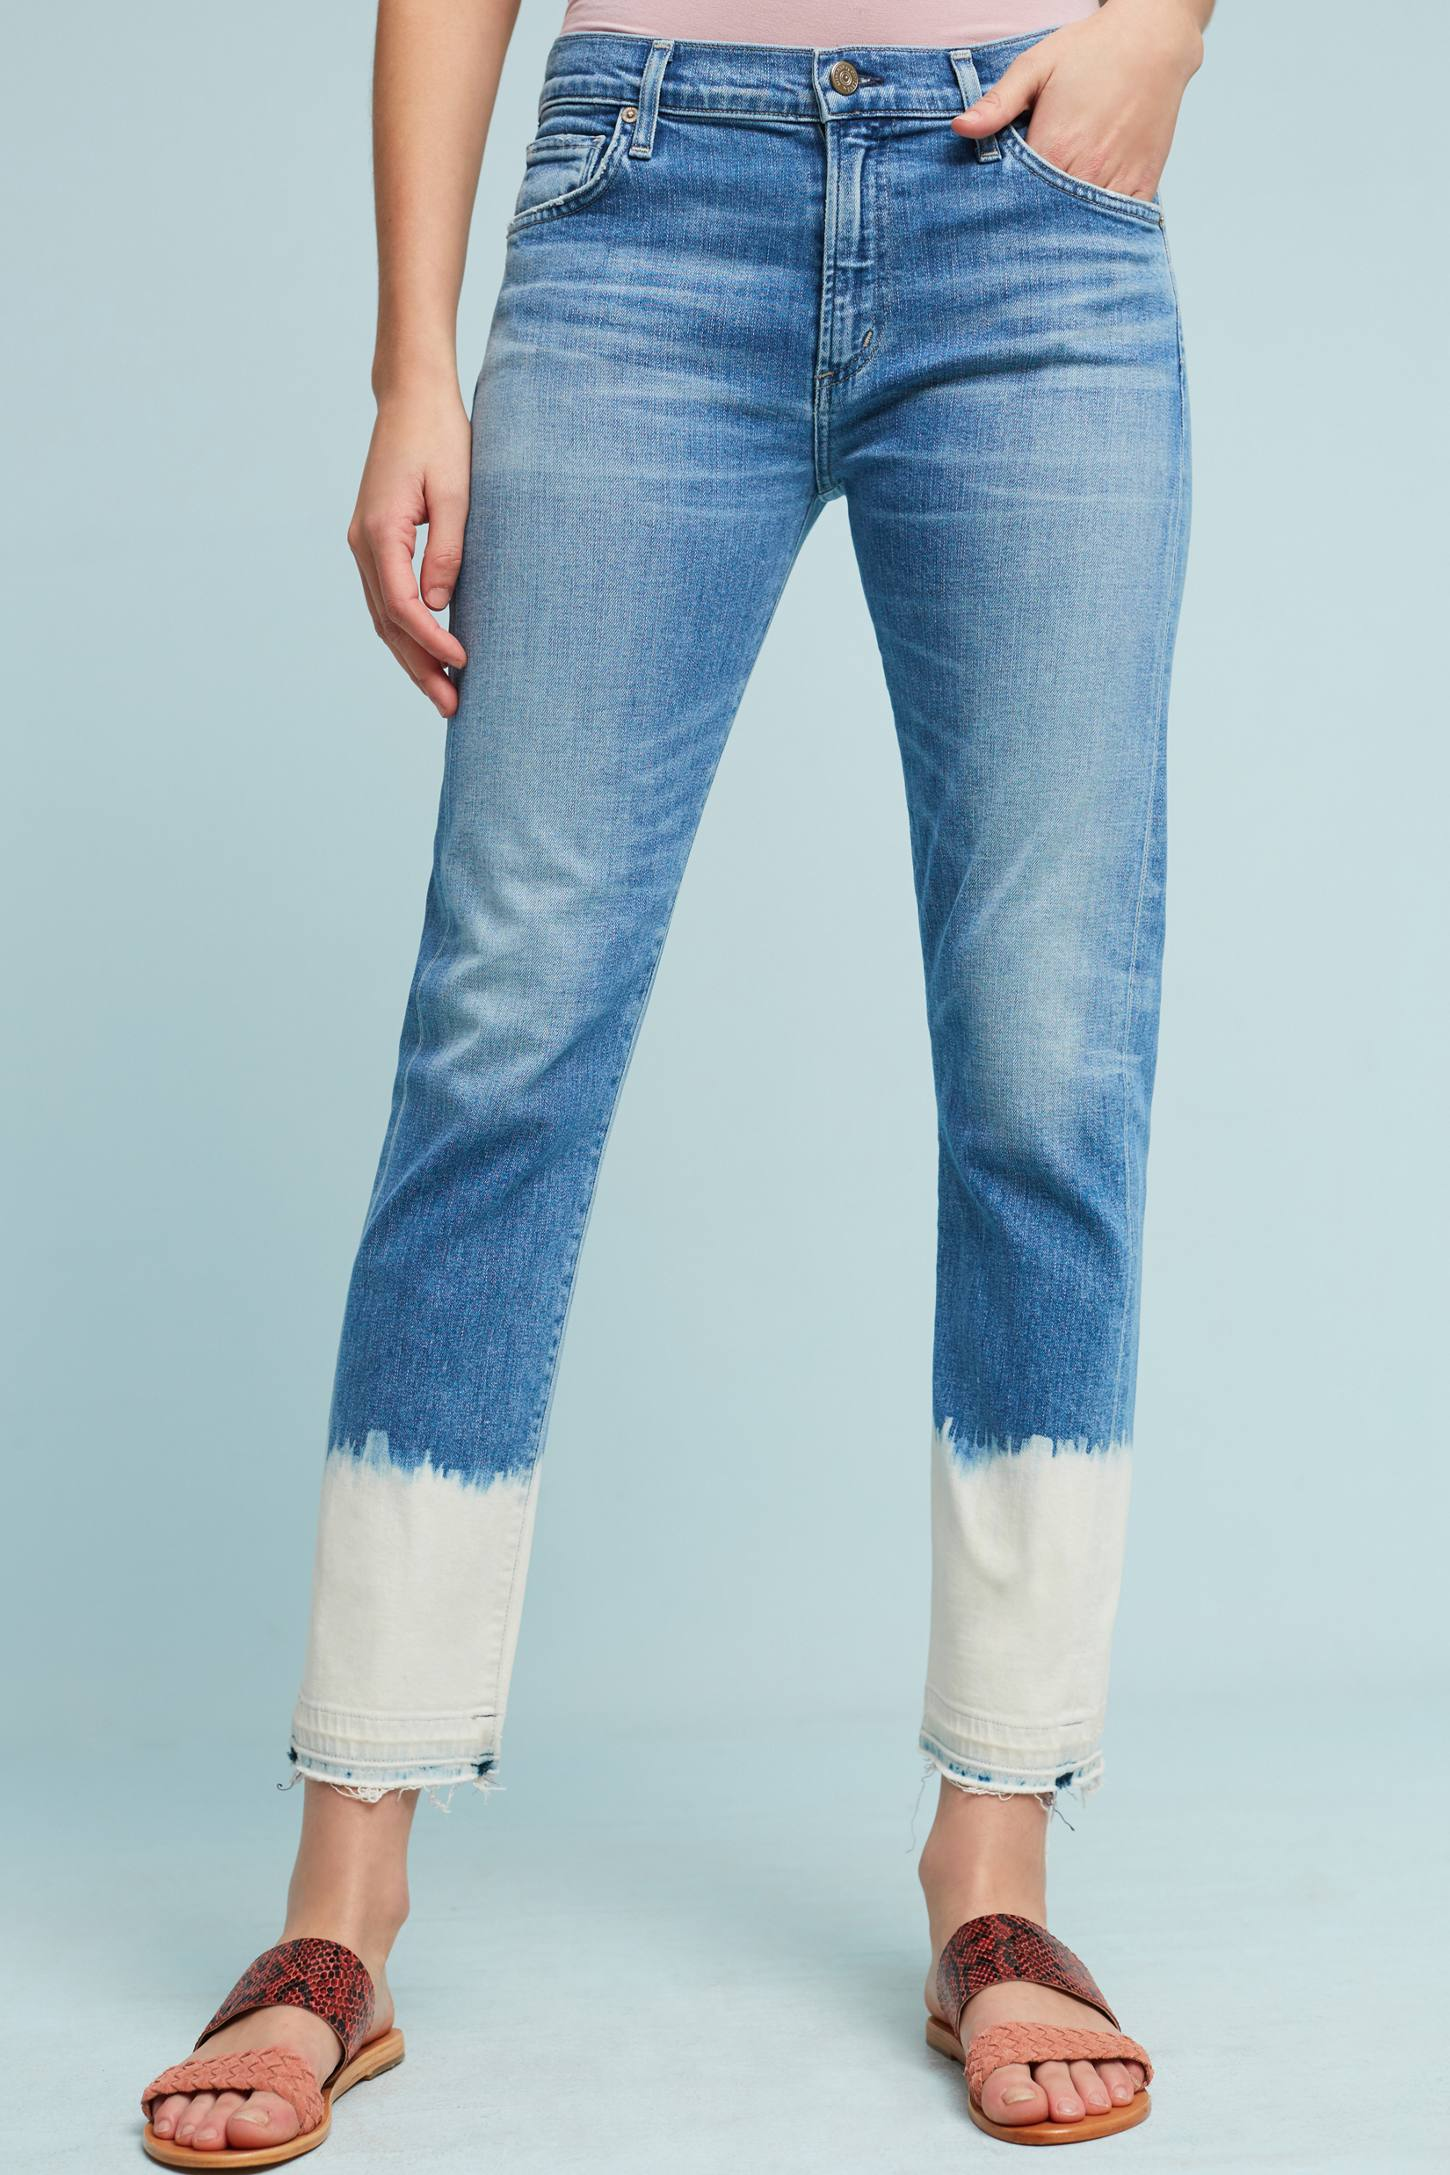 Slide View: 1: Citizens Of Humanity Agnes High-Rise Bleached Cropped Jeans